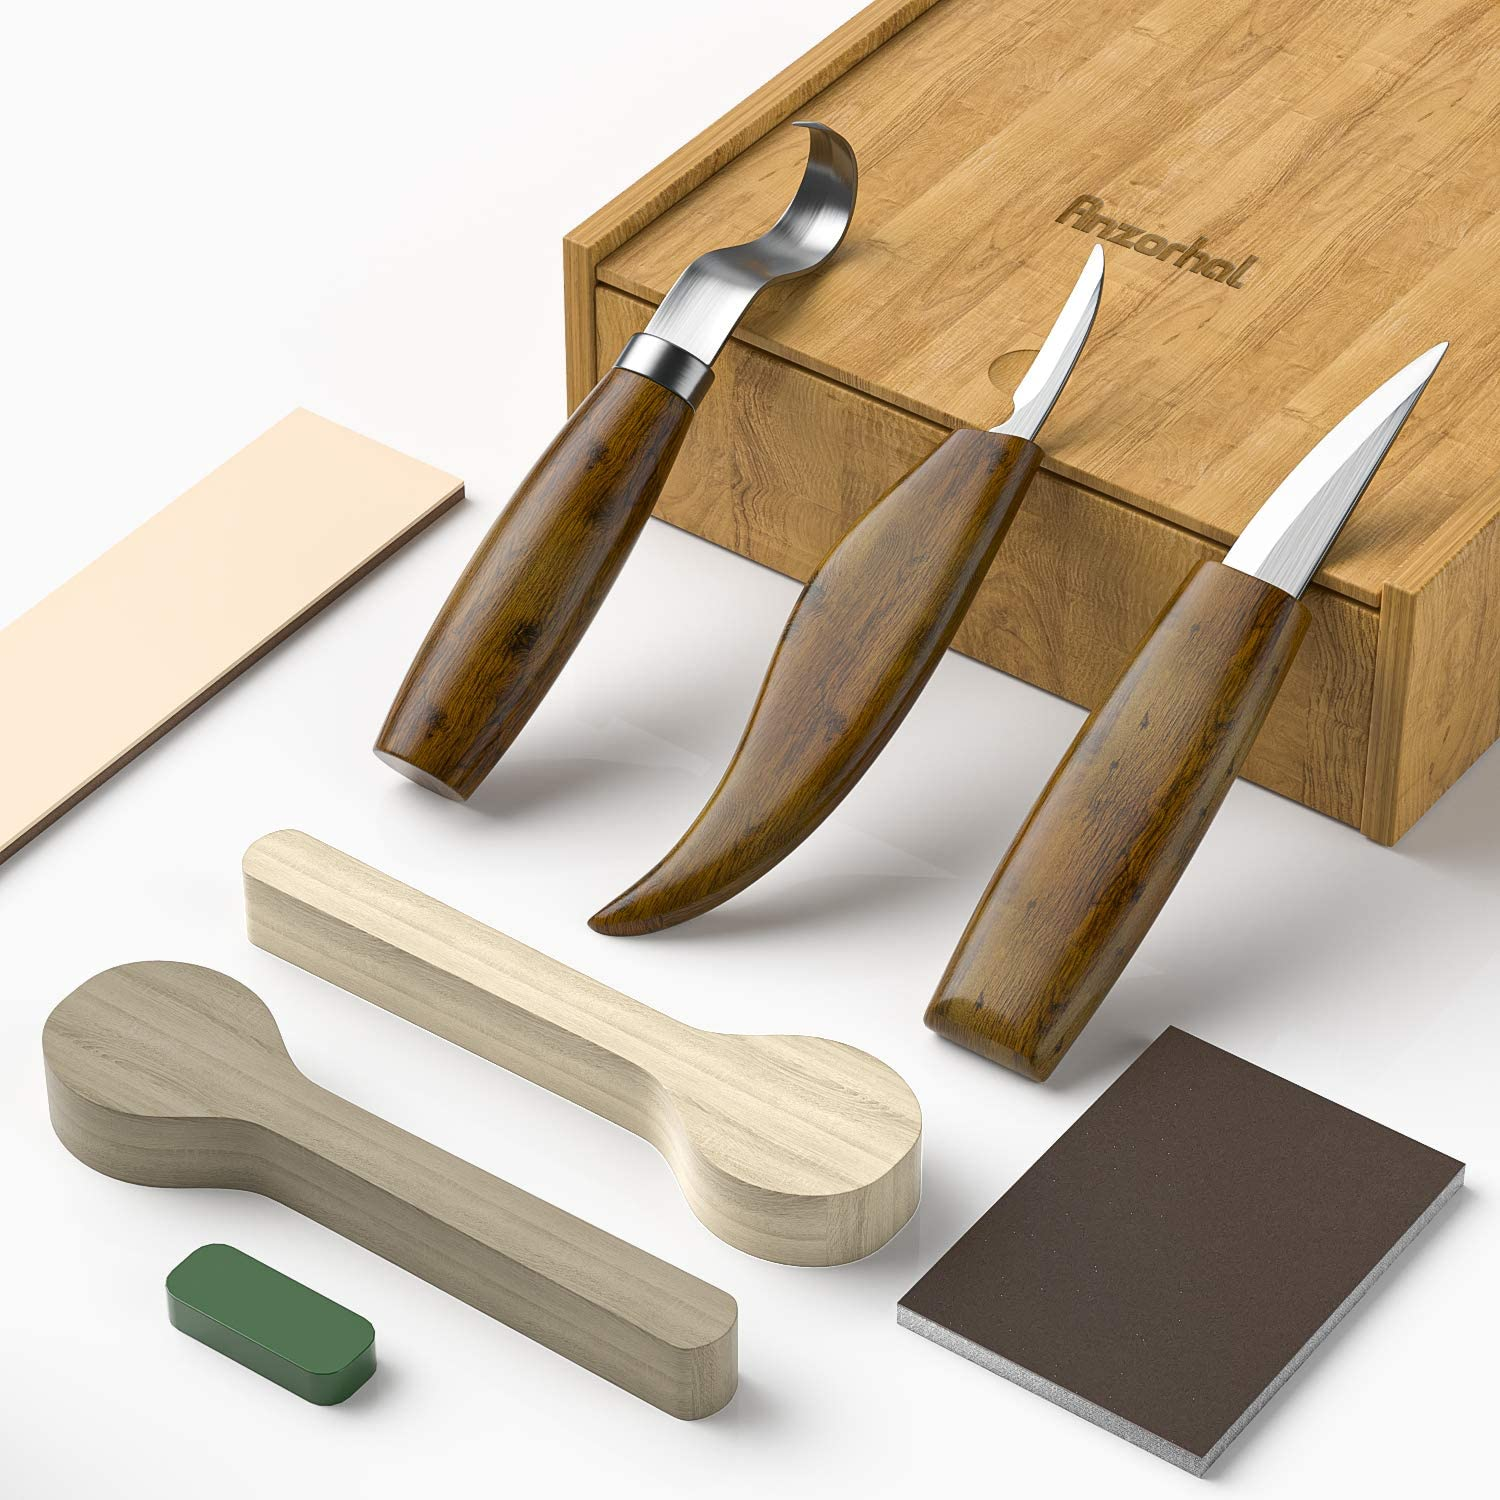 Amazon.com: Wood Carving Tools,Wood Carving Kit - Wood Carving